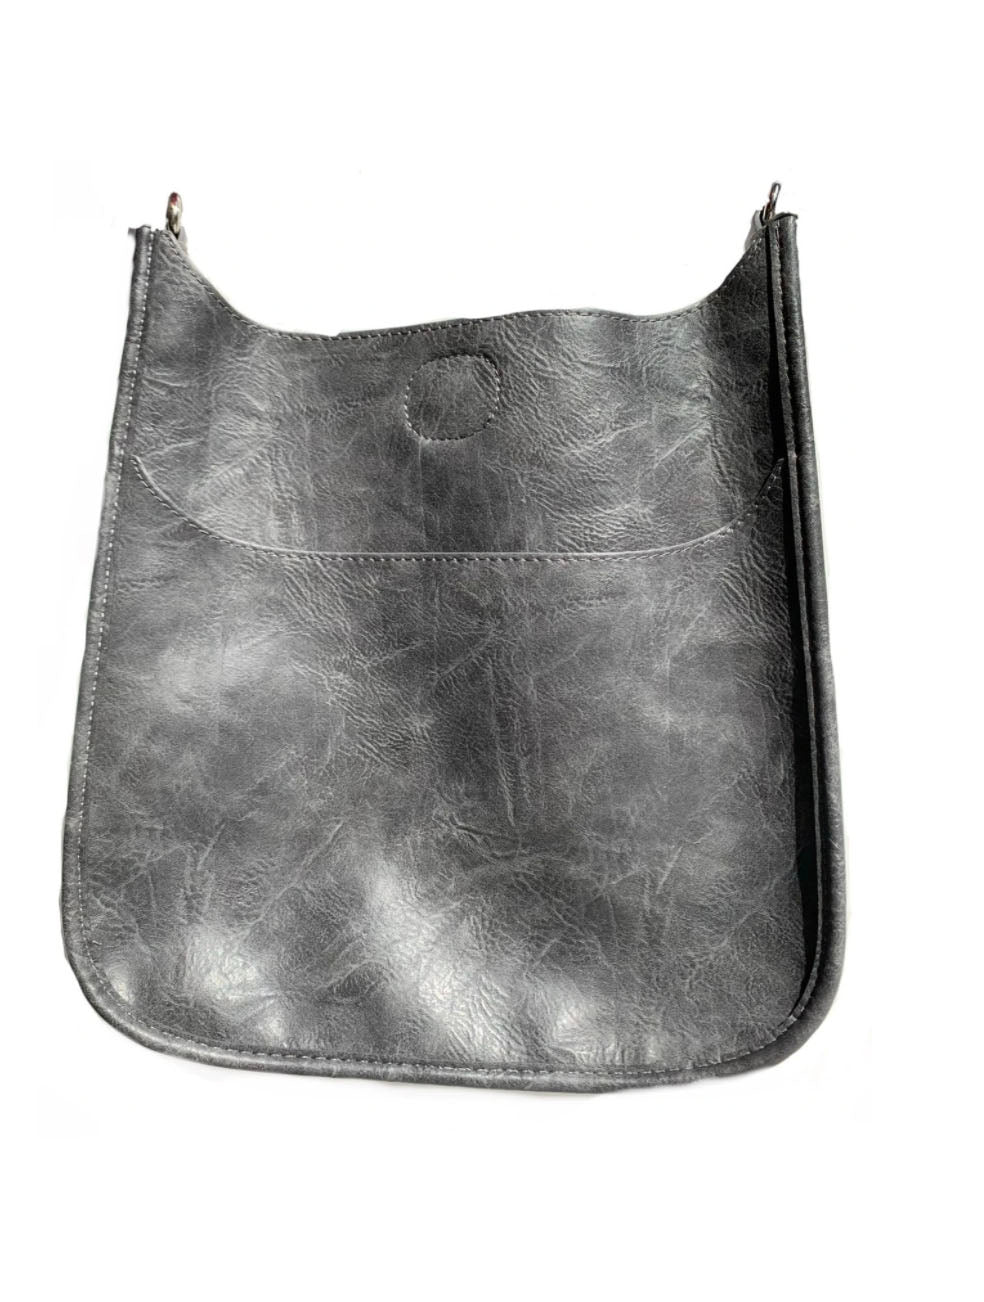 Ahdorned Faux Leather Large Distressed Messenger Bag in Grey